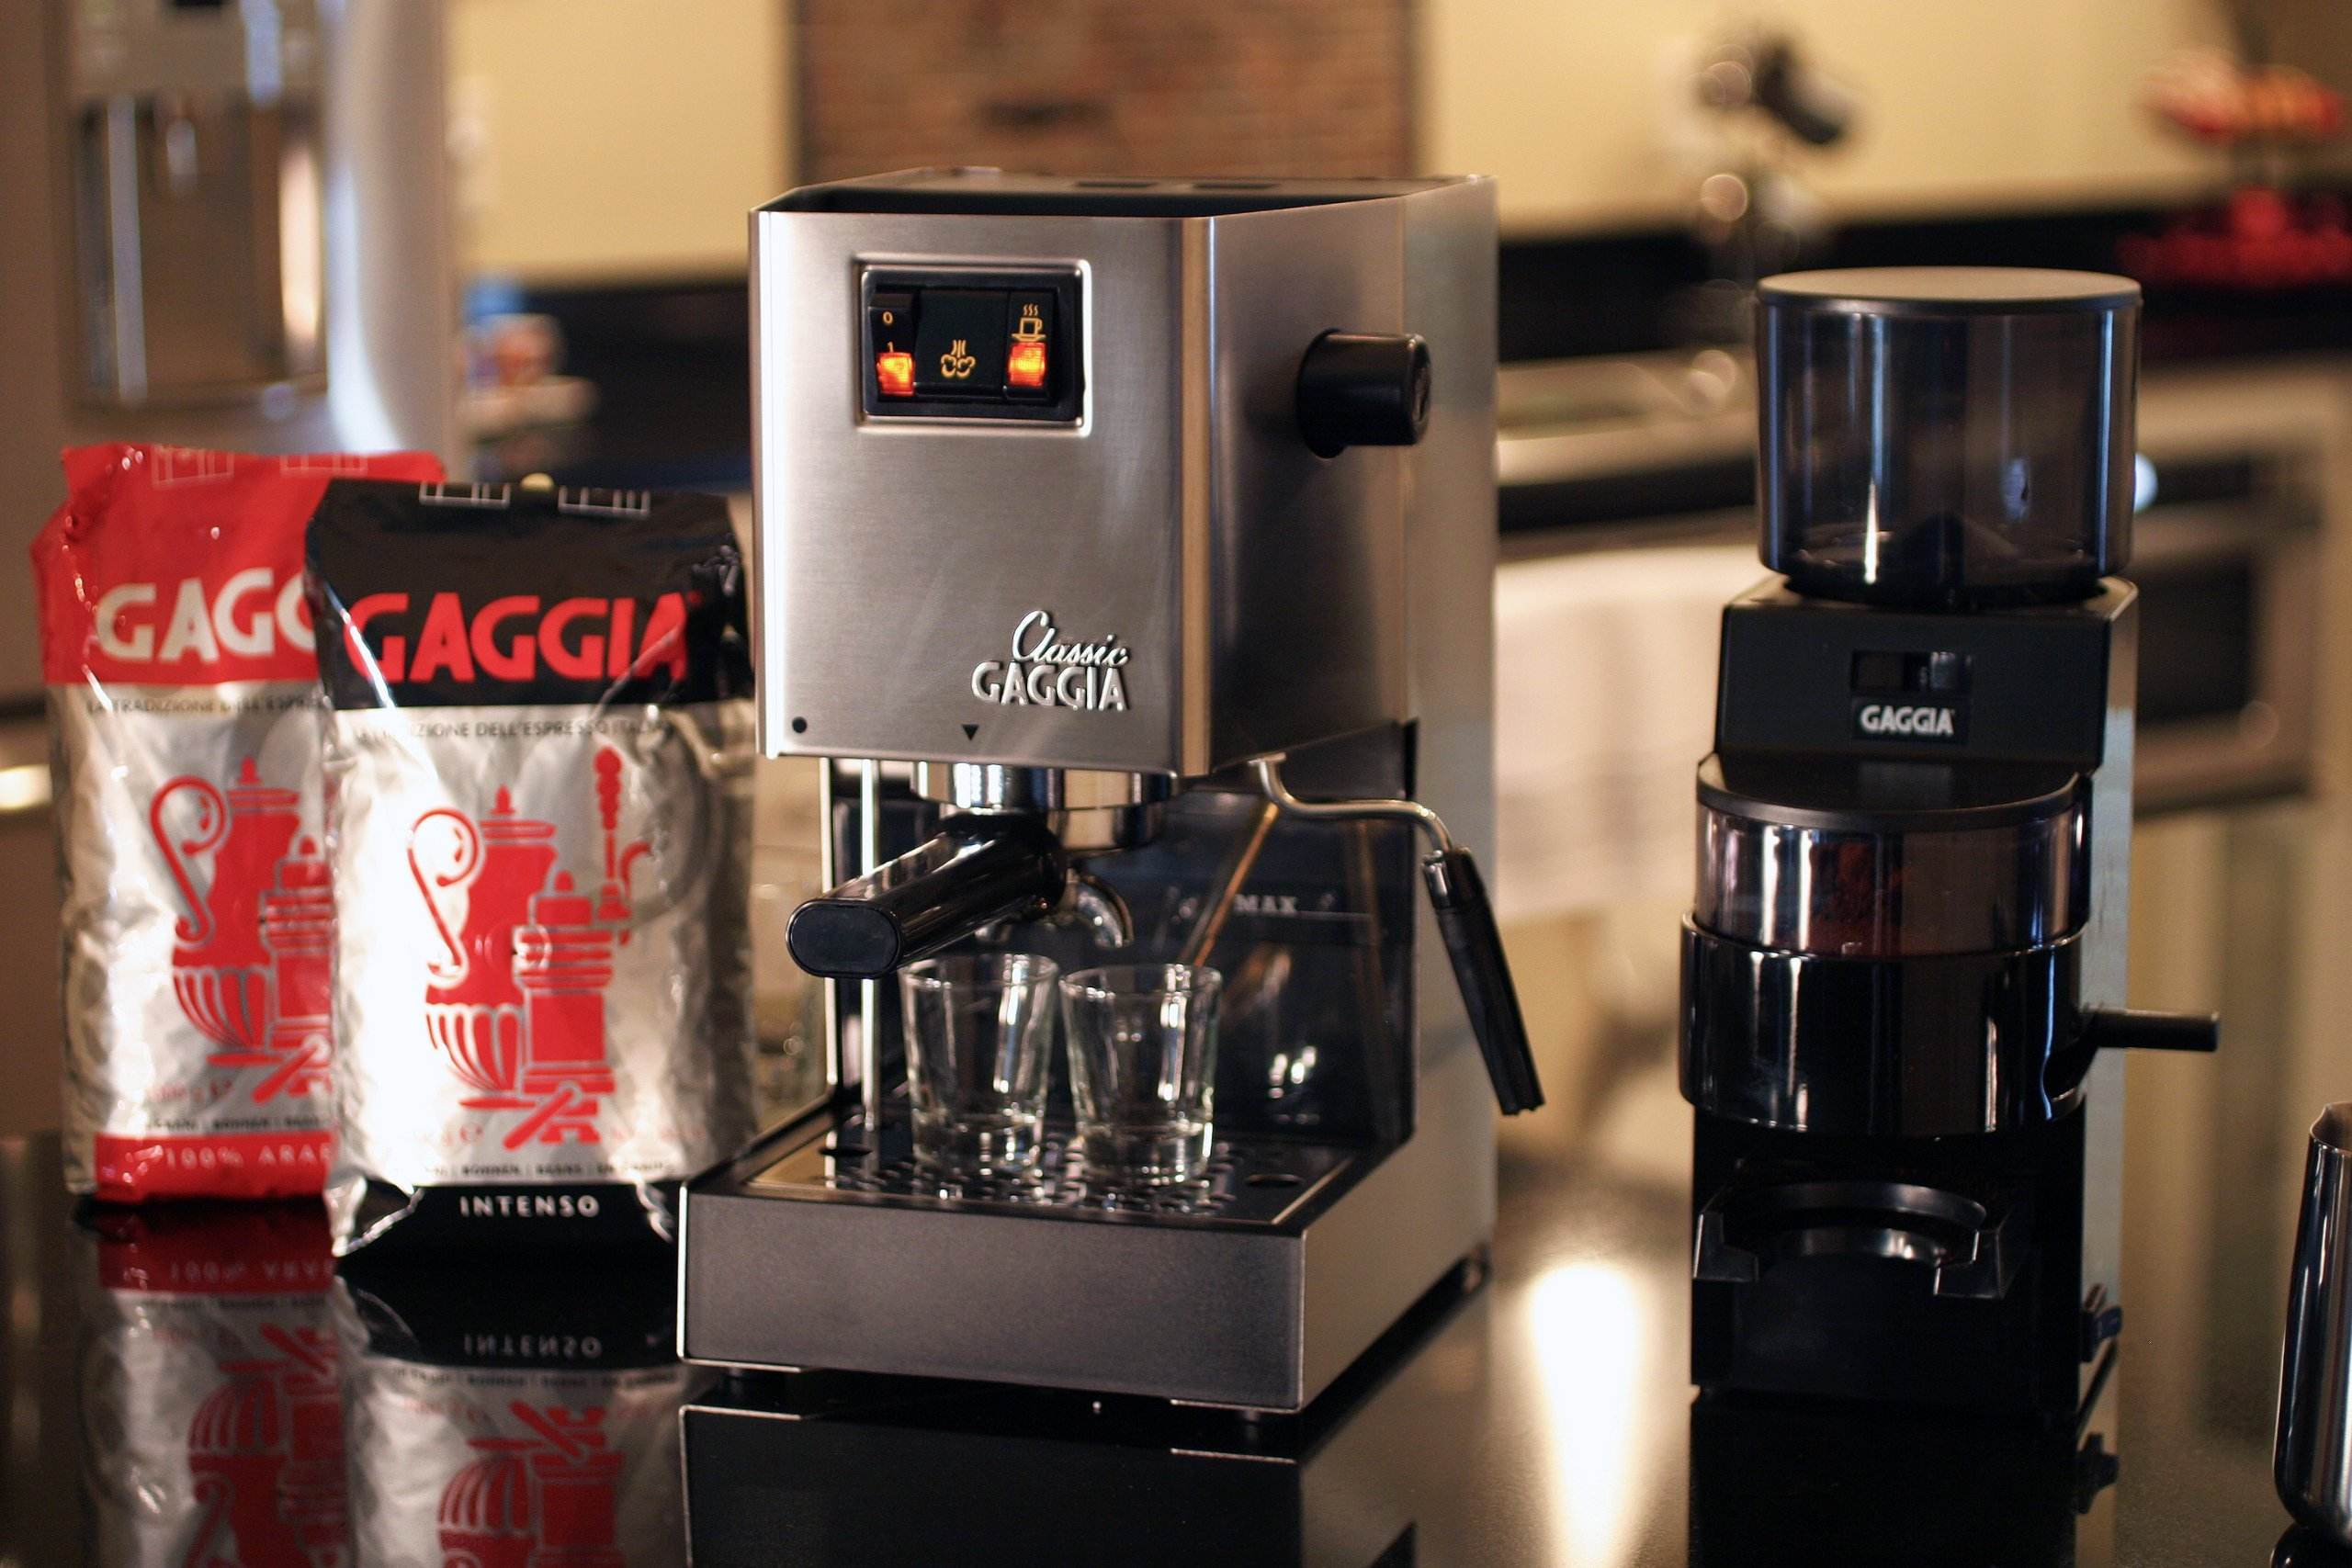 Gaggia Classic Semi-Automatic Espresso Maker. Pannarello Wand for Latte and Cappuccino Frothing. Brews for Both Single and Double Shots. by Gaggia (Image #2)